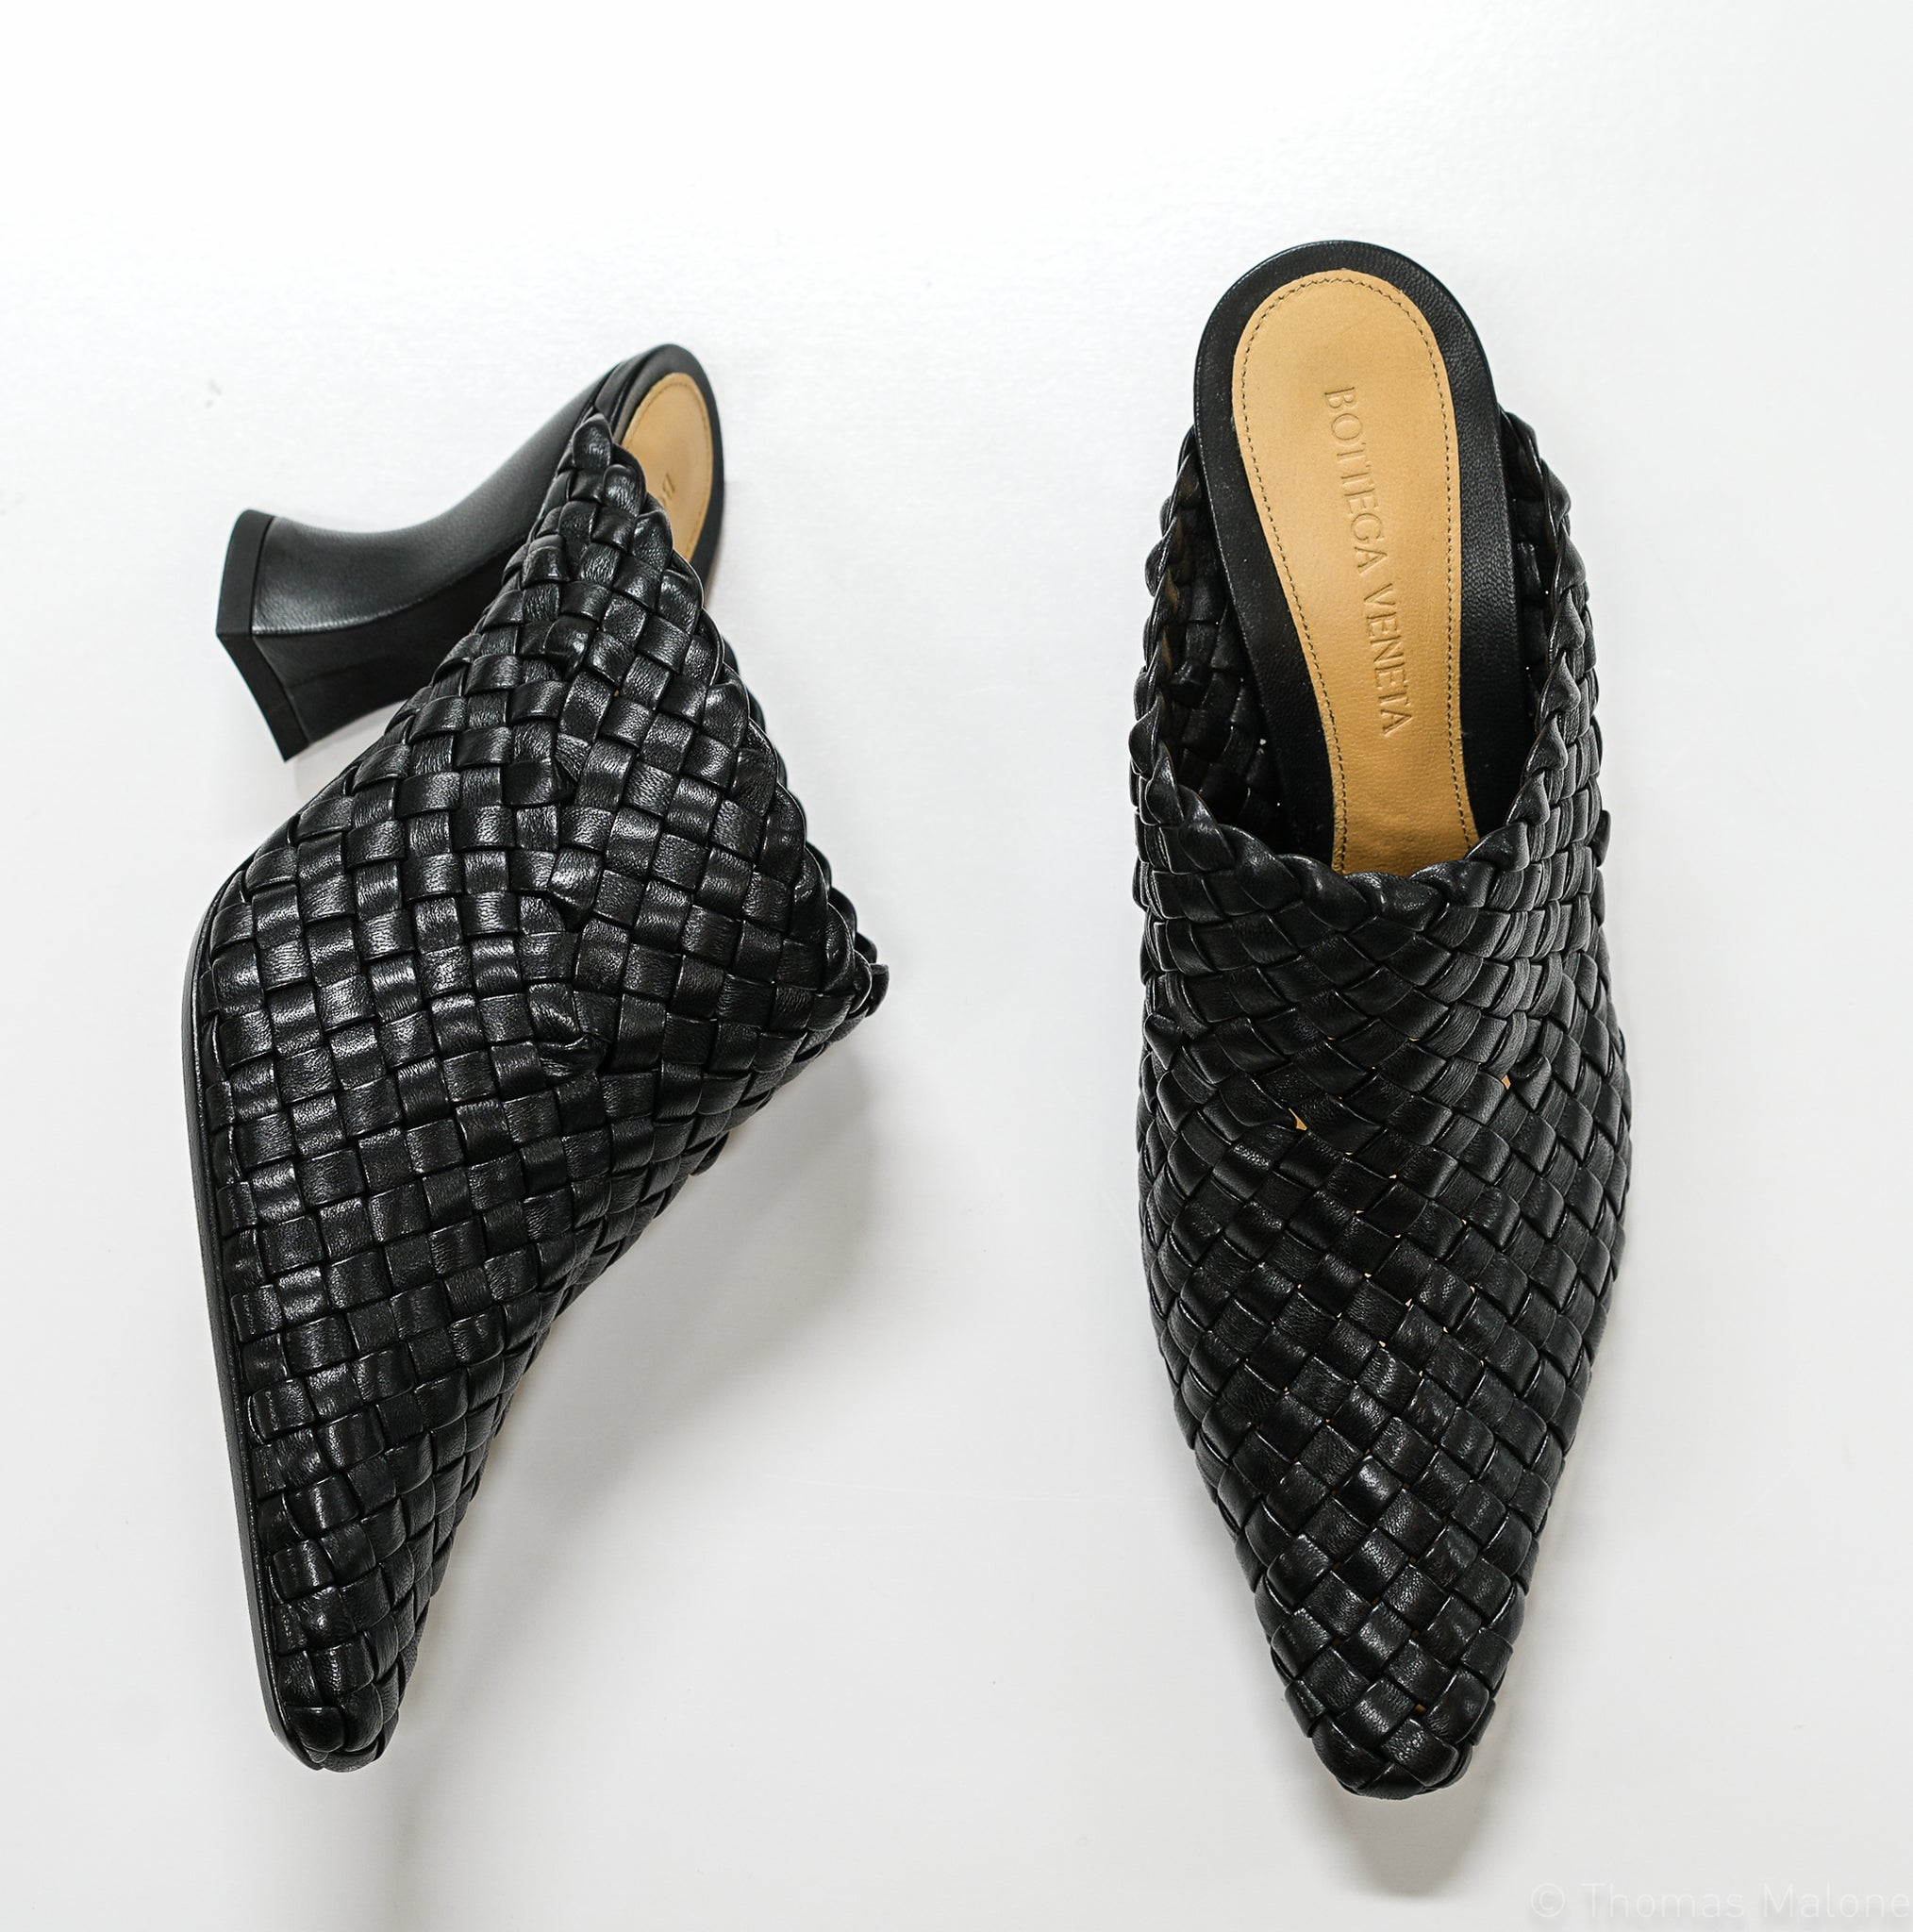 Bottega Veneta Women's Black Woven Leather Mule 608849